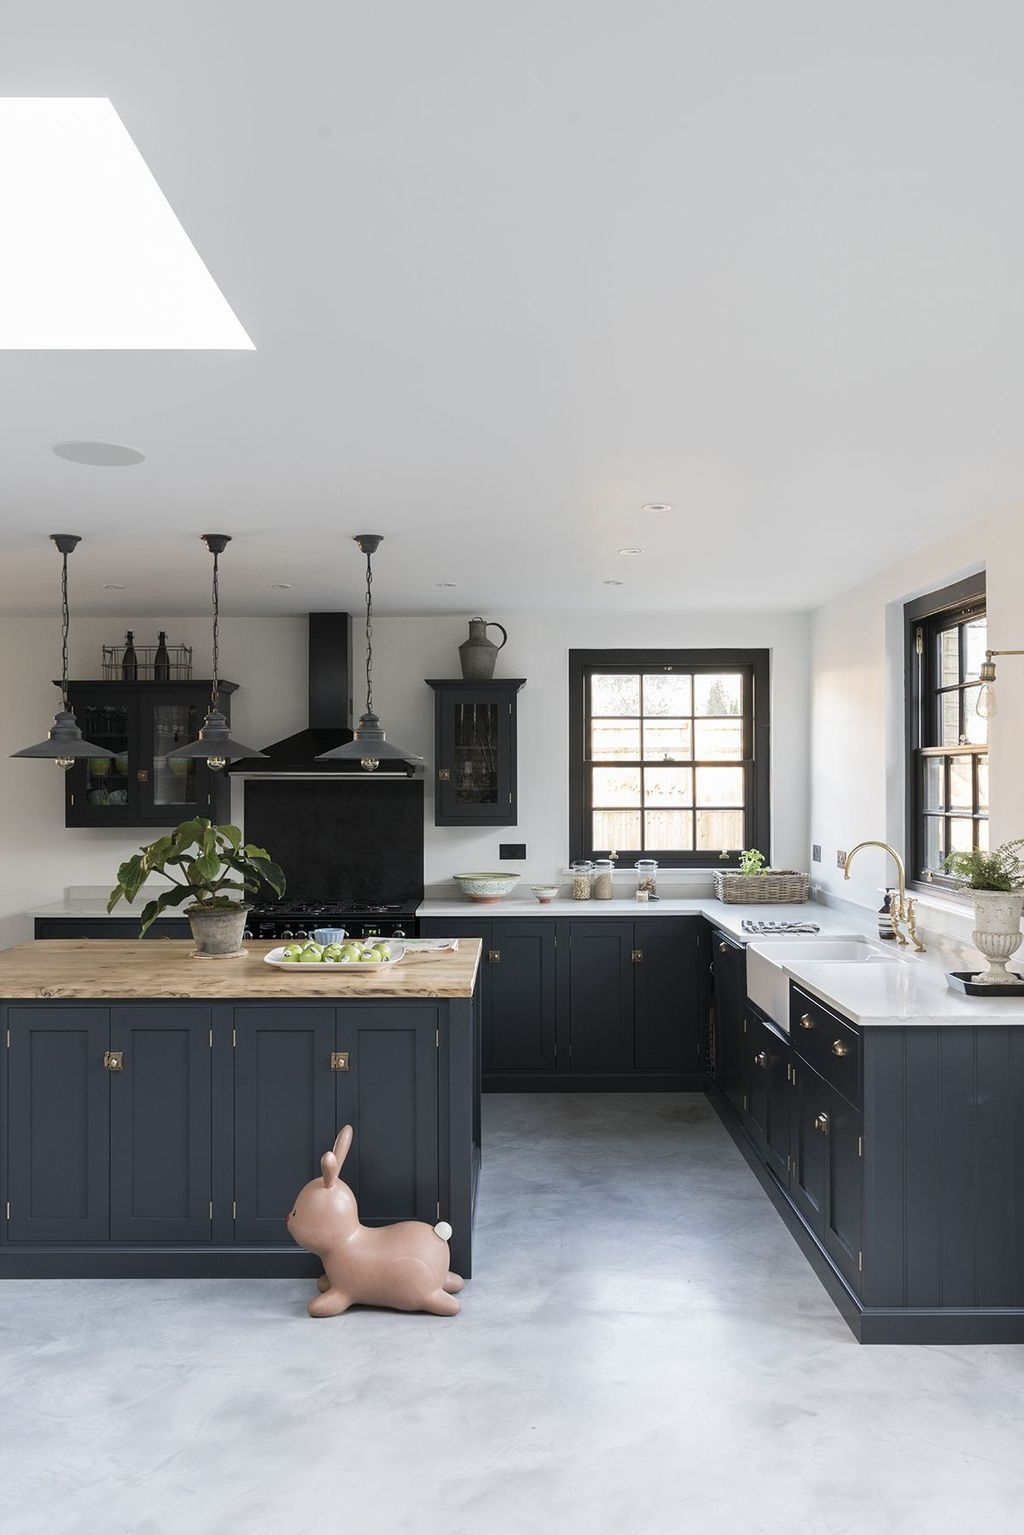 Affordable Black And White Kitchen Cabinets Ideas39